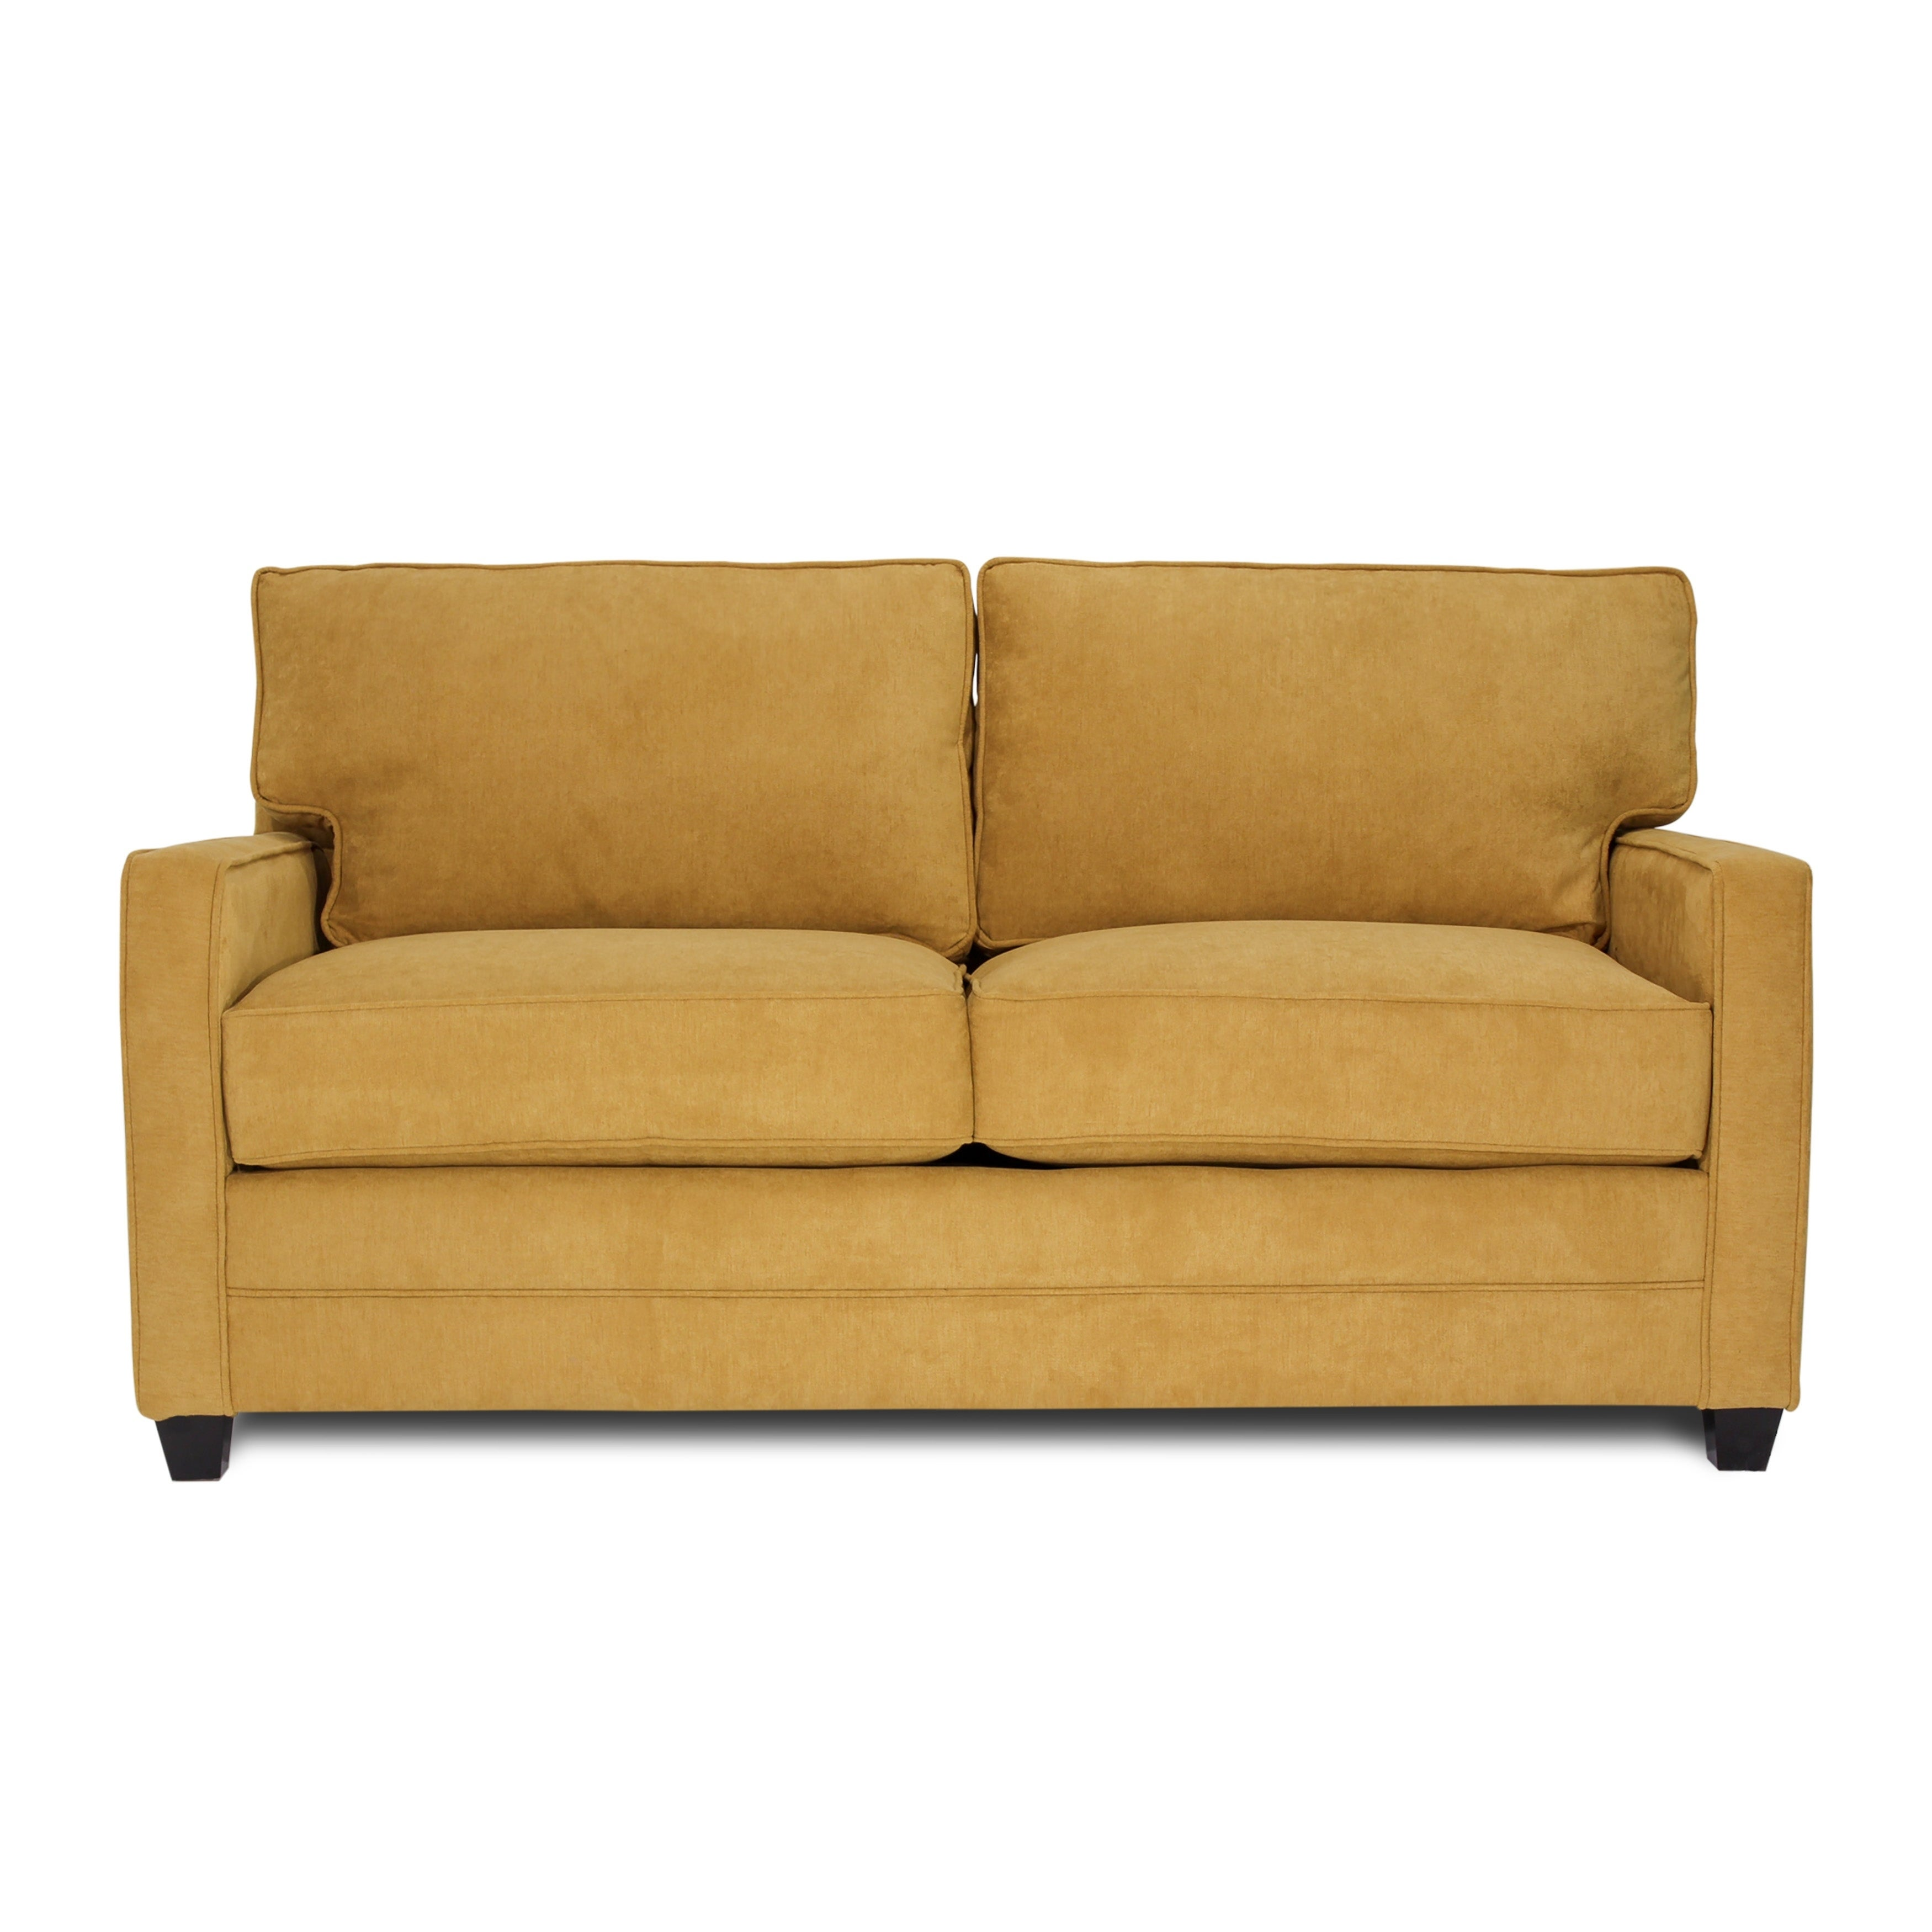 - Shop Price Full Size Sleeper Sofa - On Sale - Overstock - 28365032